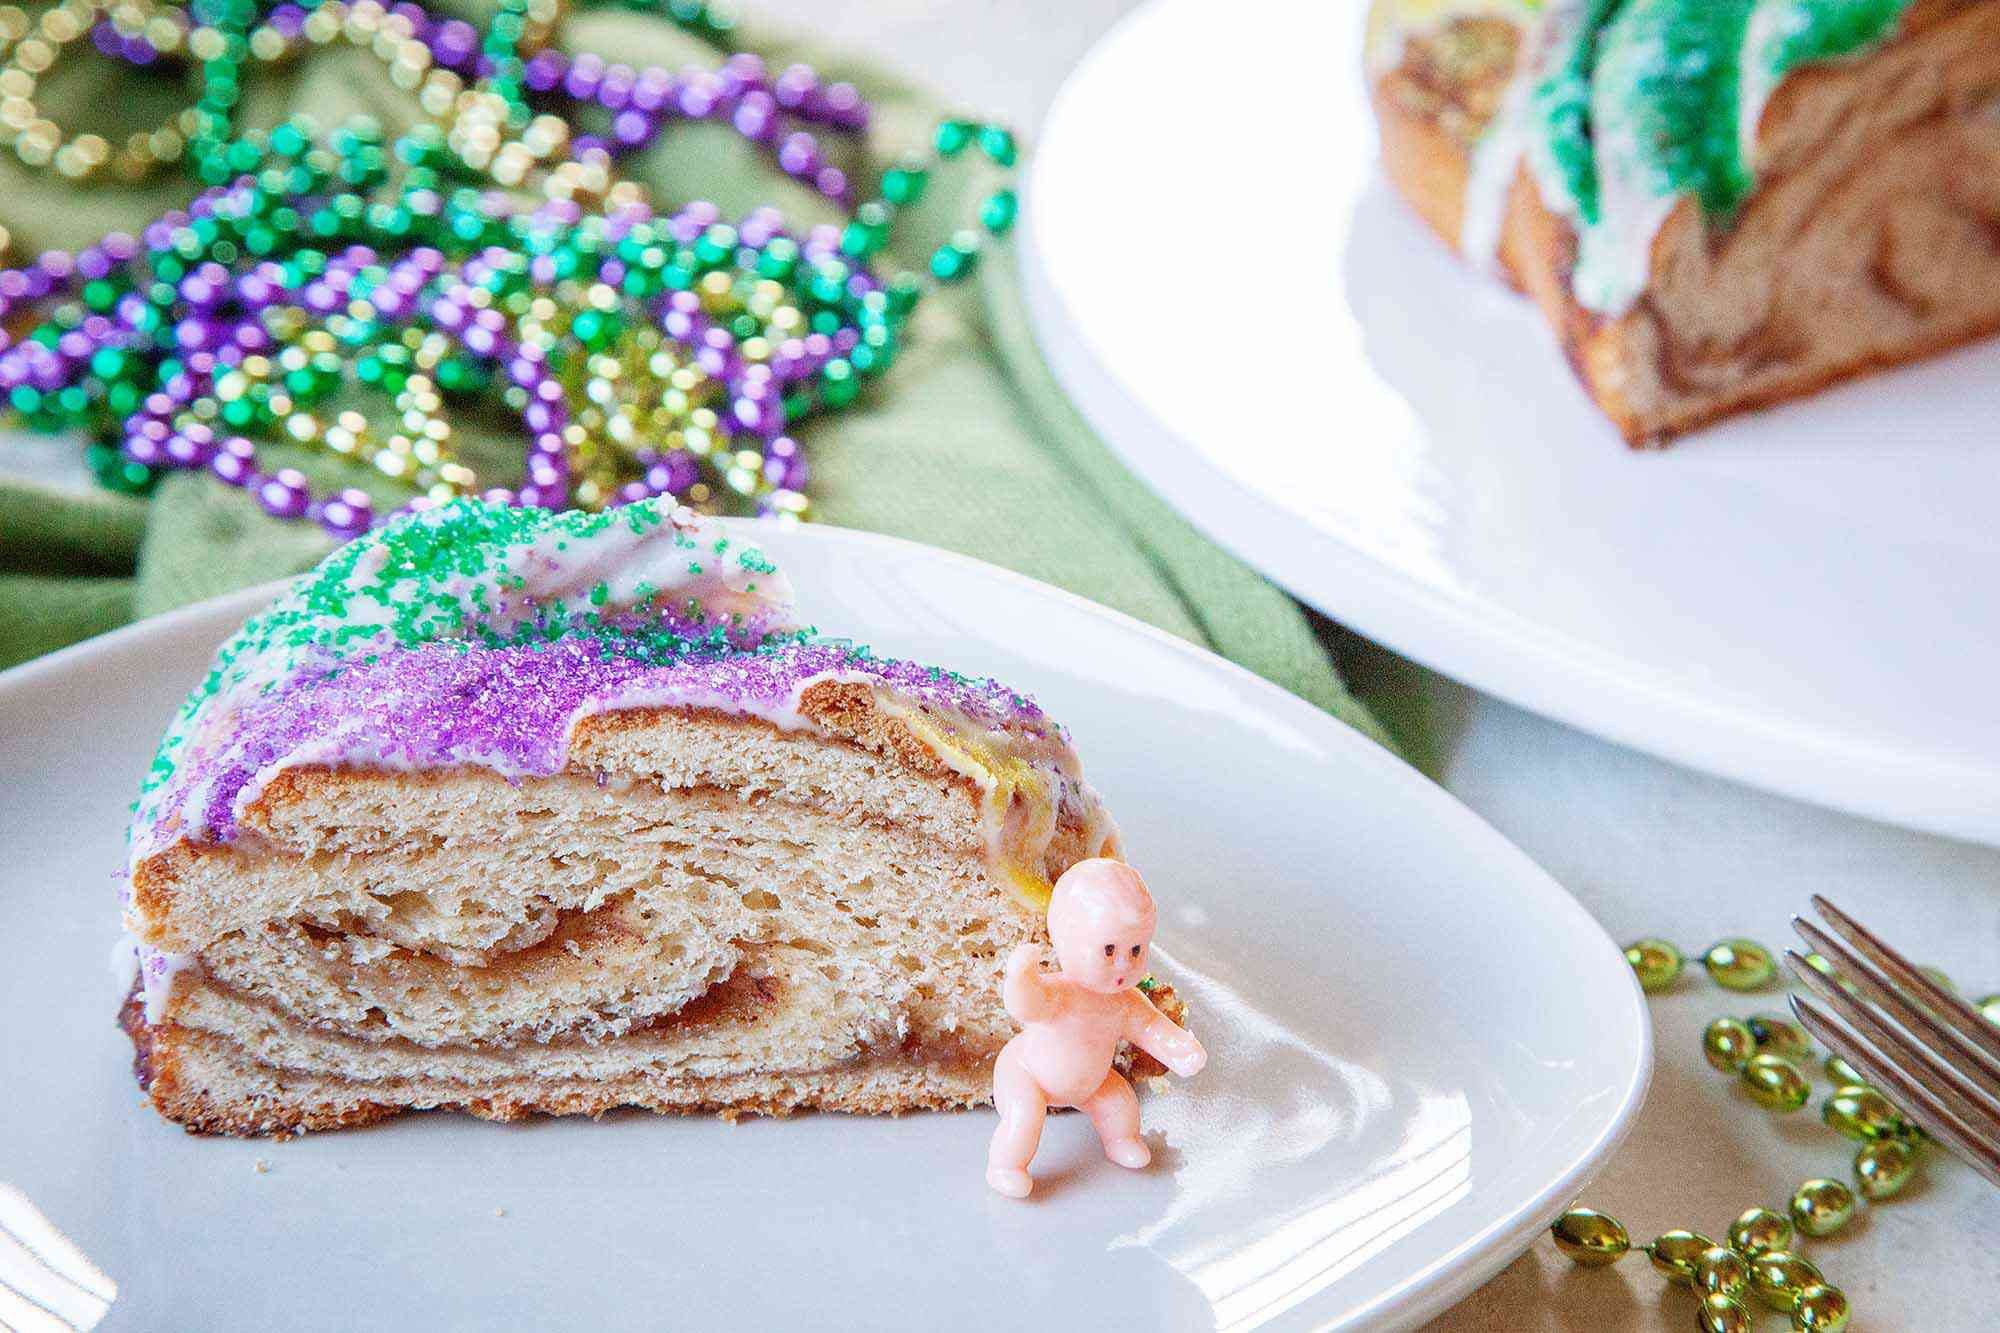 Horizontal view of a slice of homemade king cake with a small baby figurine on the plate. Mardi Gras beads and a partial view of the rest of the cake are in the background.